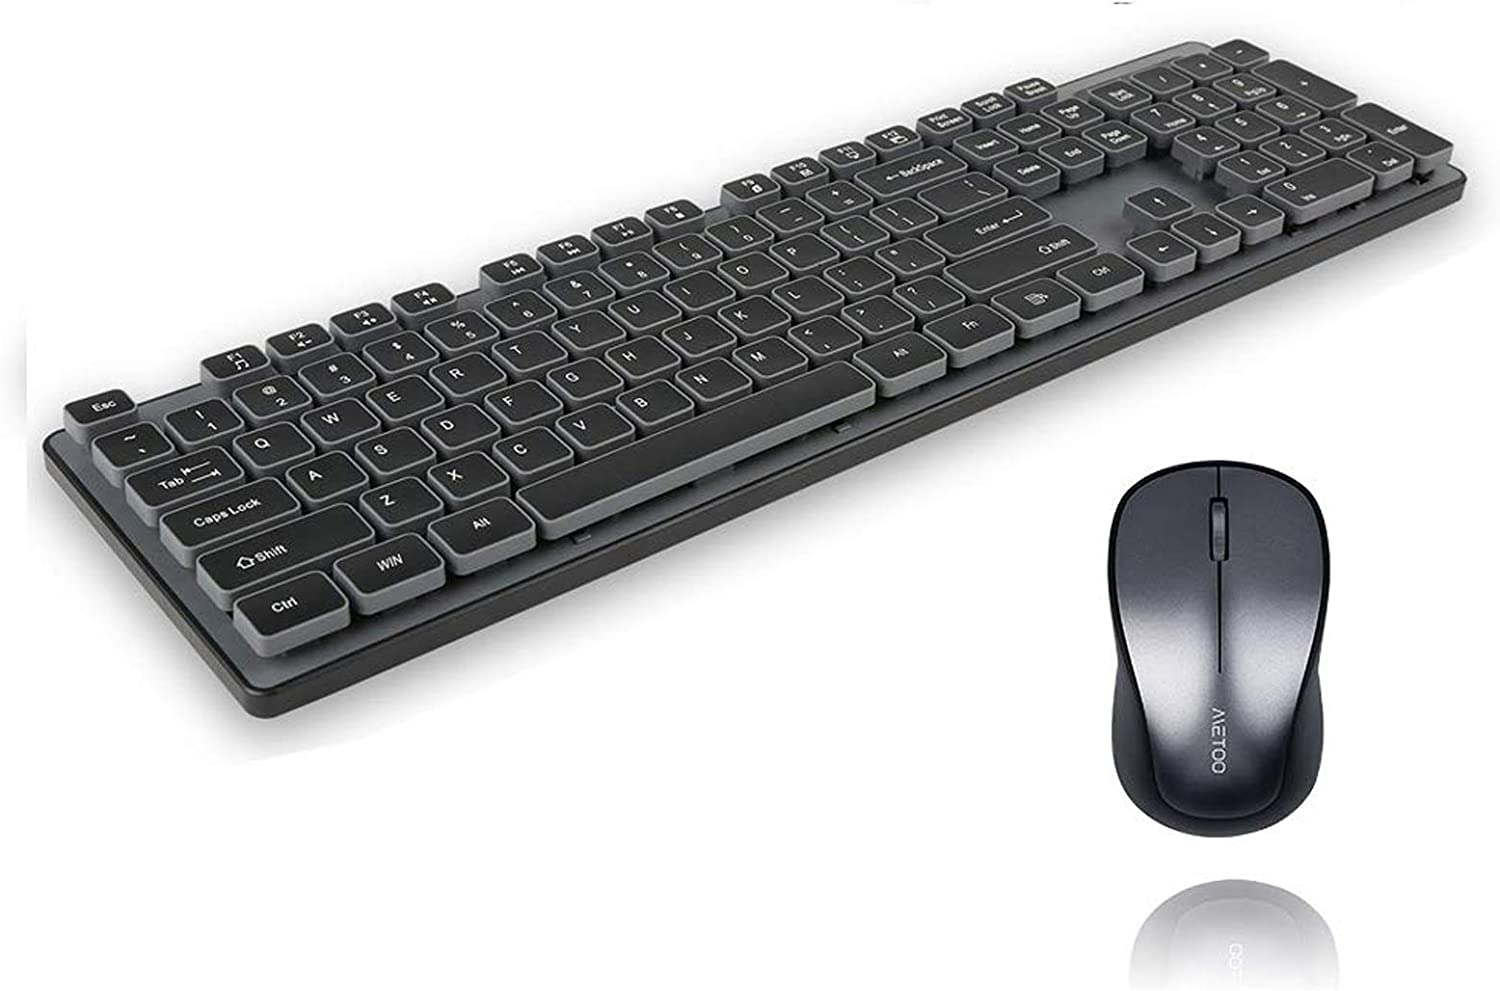 Wireless Keyboard and Mouse Combo,Sosee 2.4Ghz Ultra-Slim Full Size Suspension Keycap Mute Cute Keyboard Optical Mouse Set for Home Office PC Laptop Windows XP/7/8/10/Mac (Black)